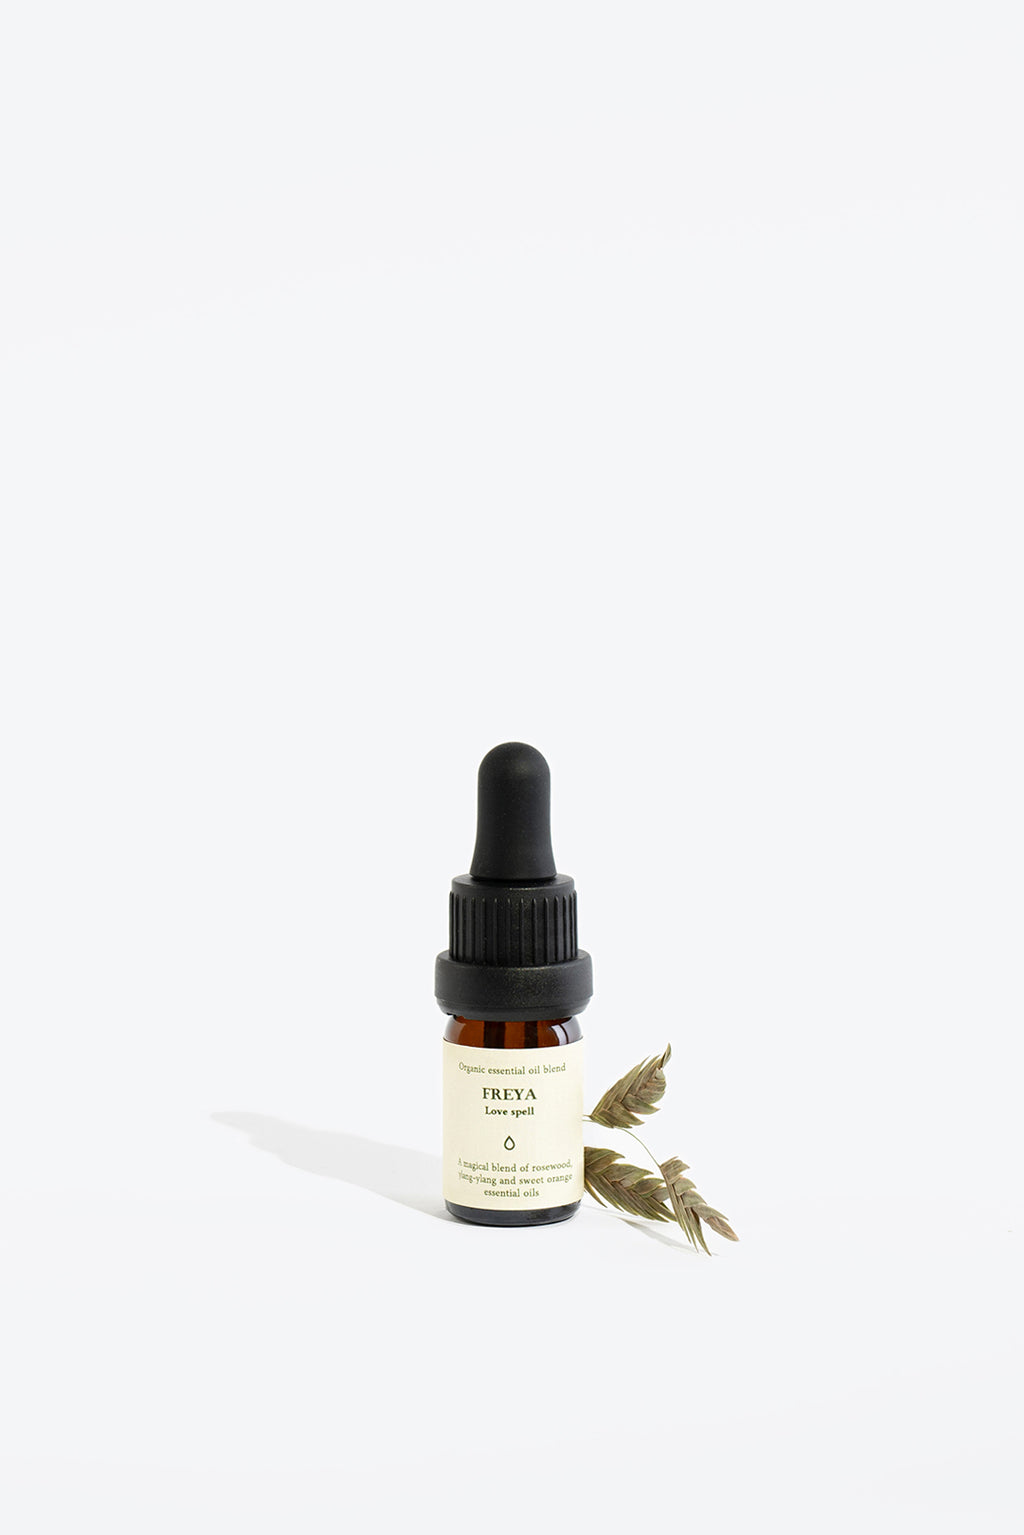 ESSENTIAL OIL BLEND FREYA